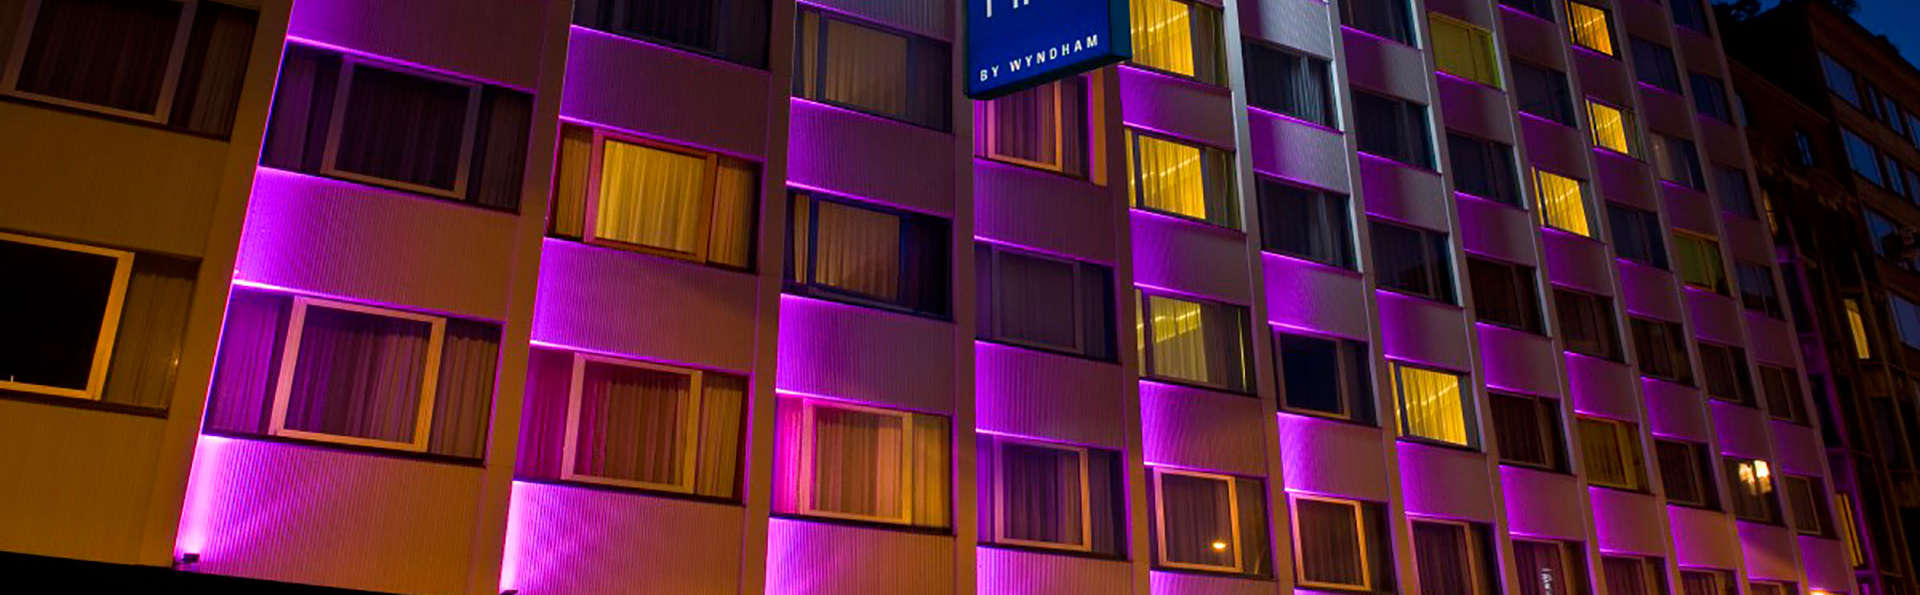 TRYP by Wyndham Antwerp - EDIT_front.jpg